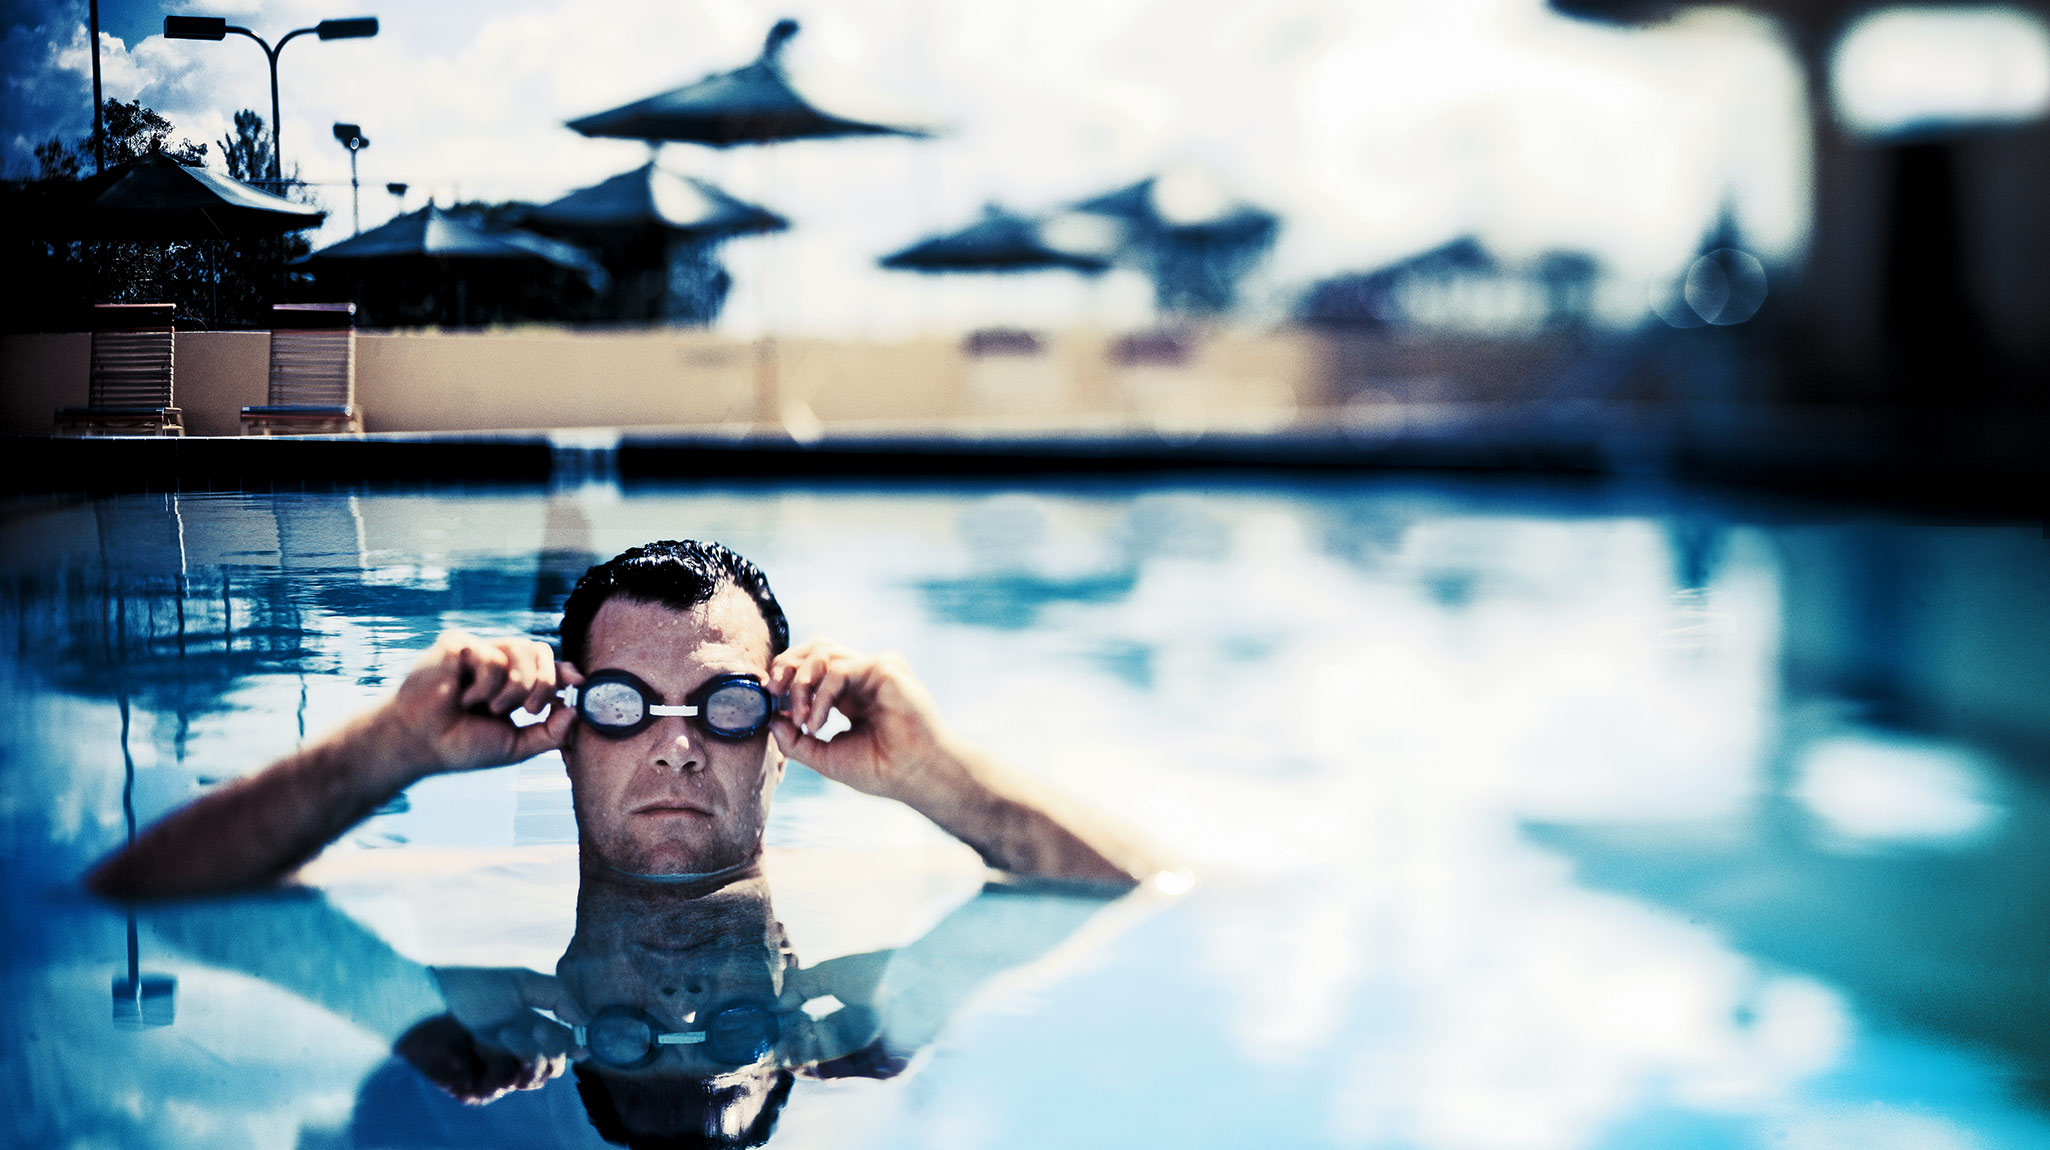 Resort Swimmer With Goggles